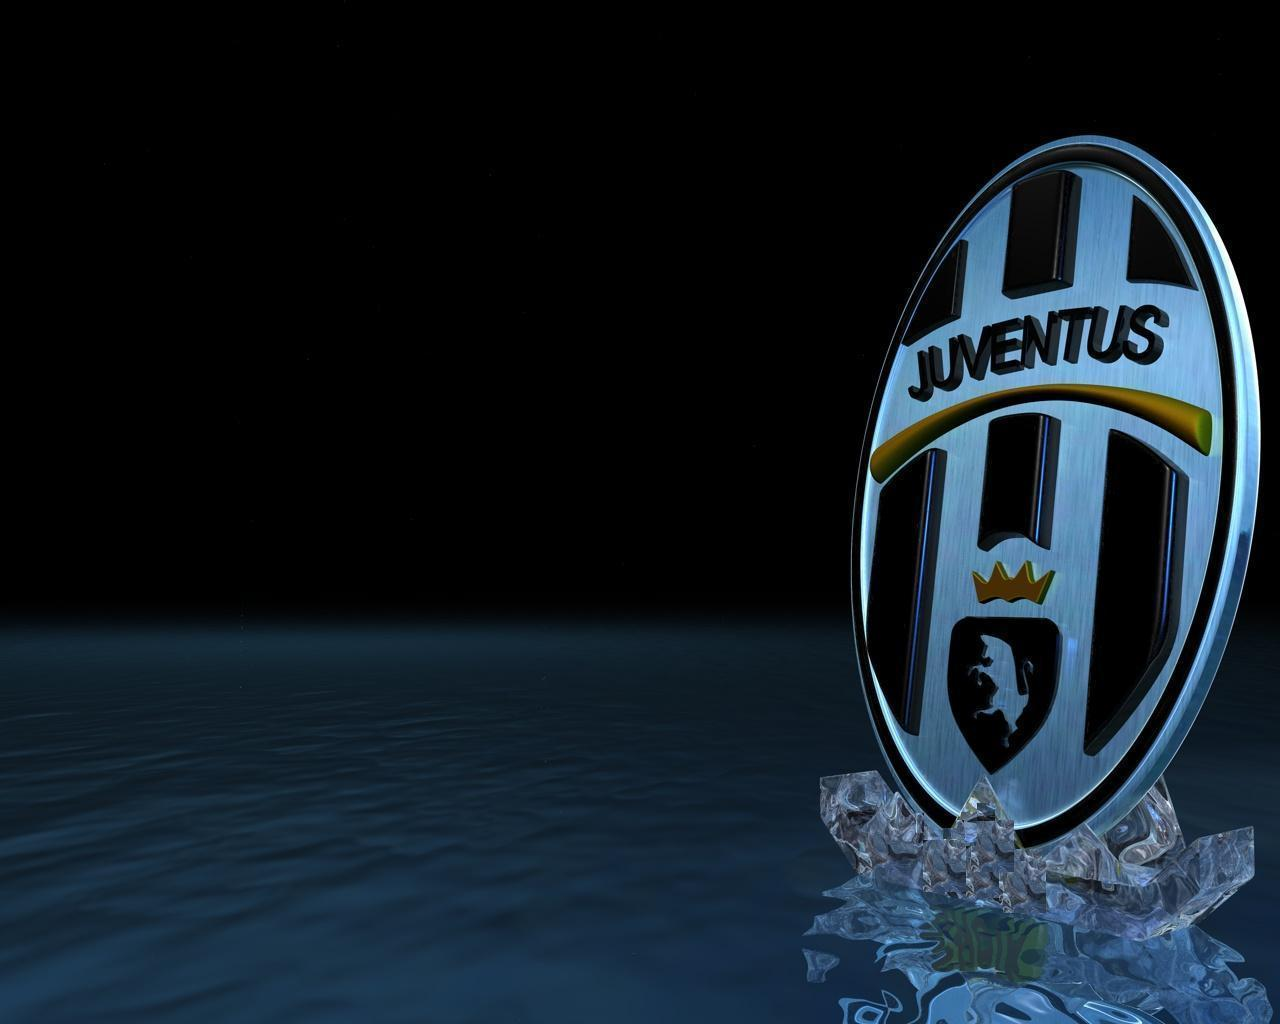 Juventus In Wall Image Wallpapers Wallpapers